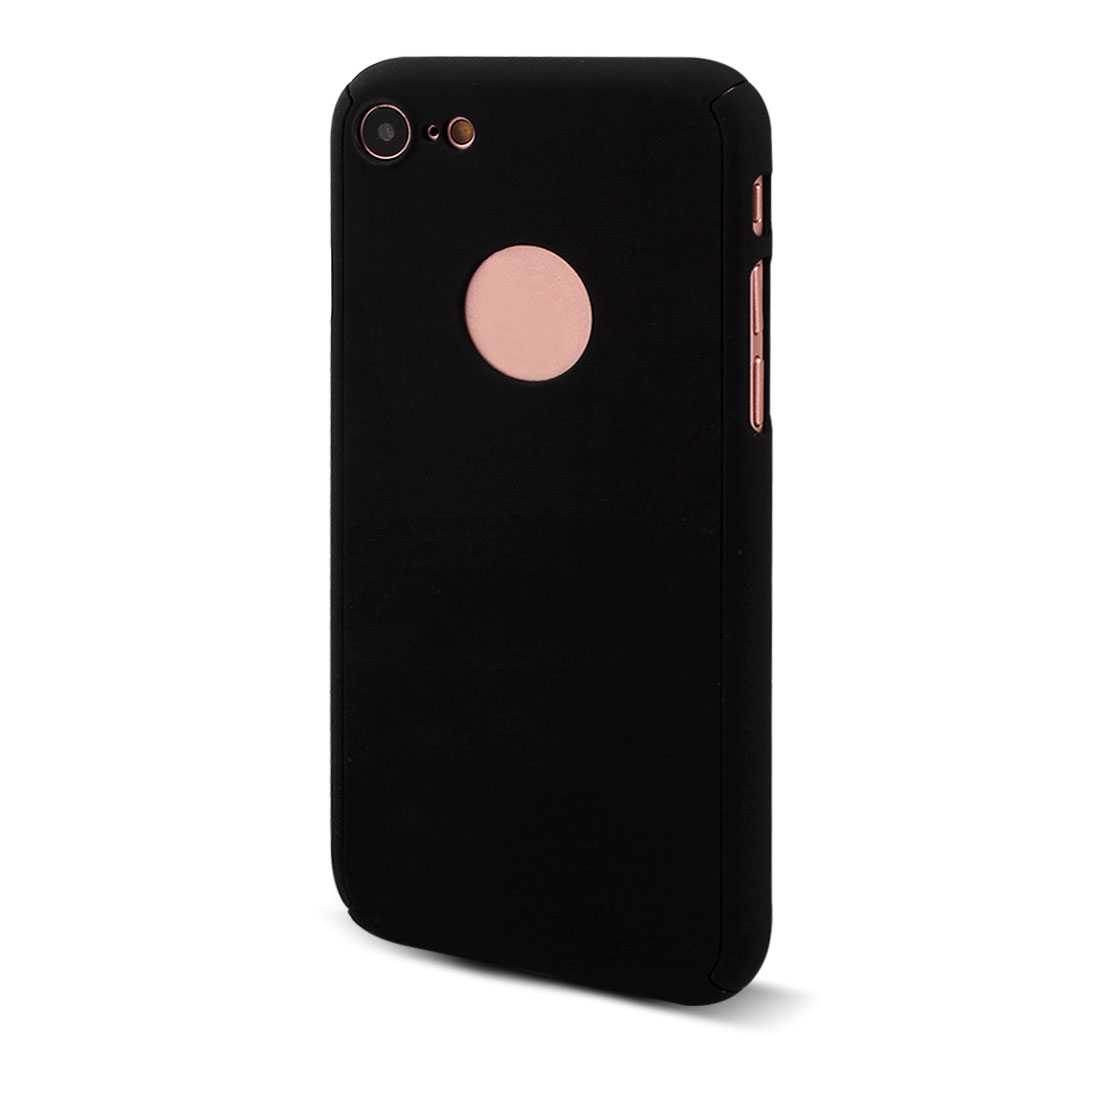 Polycarbonate 360 Degree Hard Protective Phone Case Skin Black for iPhone 7